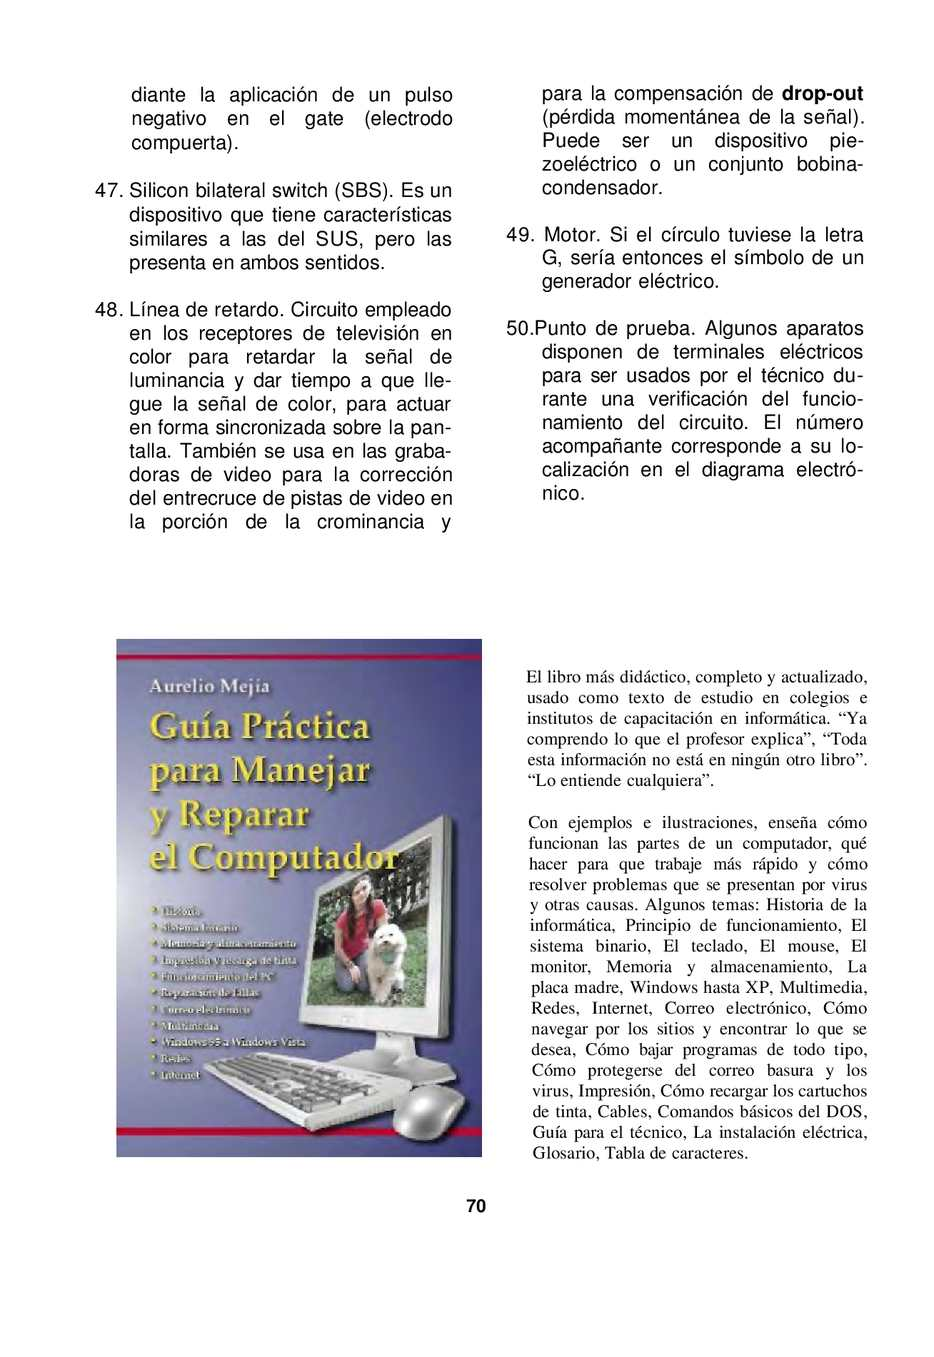 Electronica Facil N1 Calameo Downloader Silicon Bilateral Switch Page 69